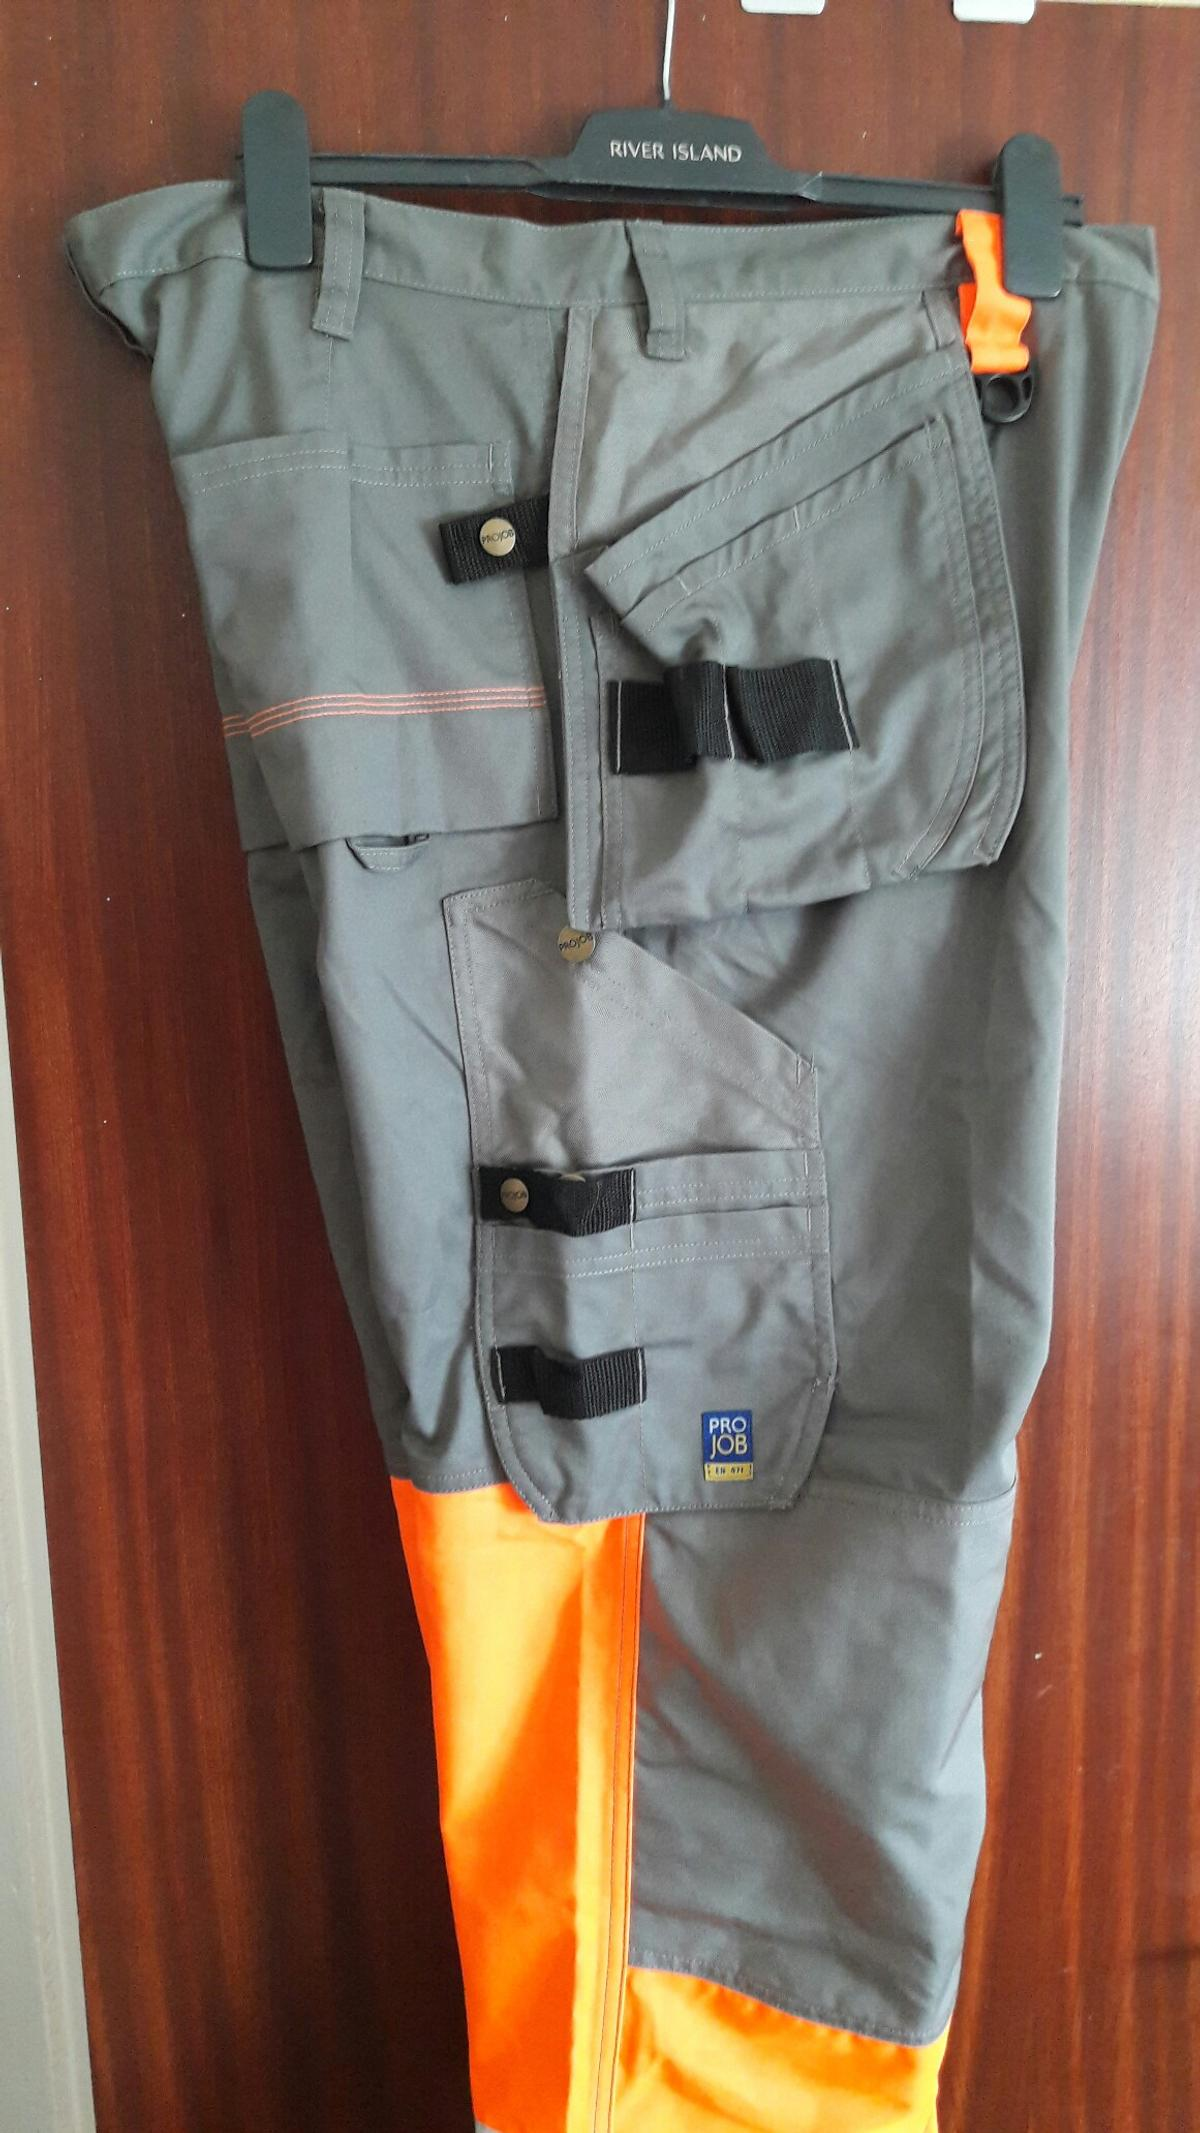 volume large large assortment save up to 80% Pro-job work trousers in ST2-Trent für 10,00 £ kaufen - Shpock